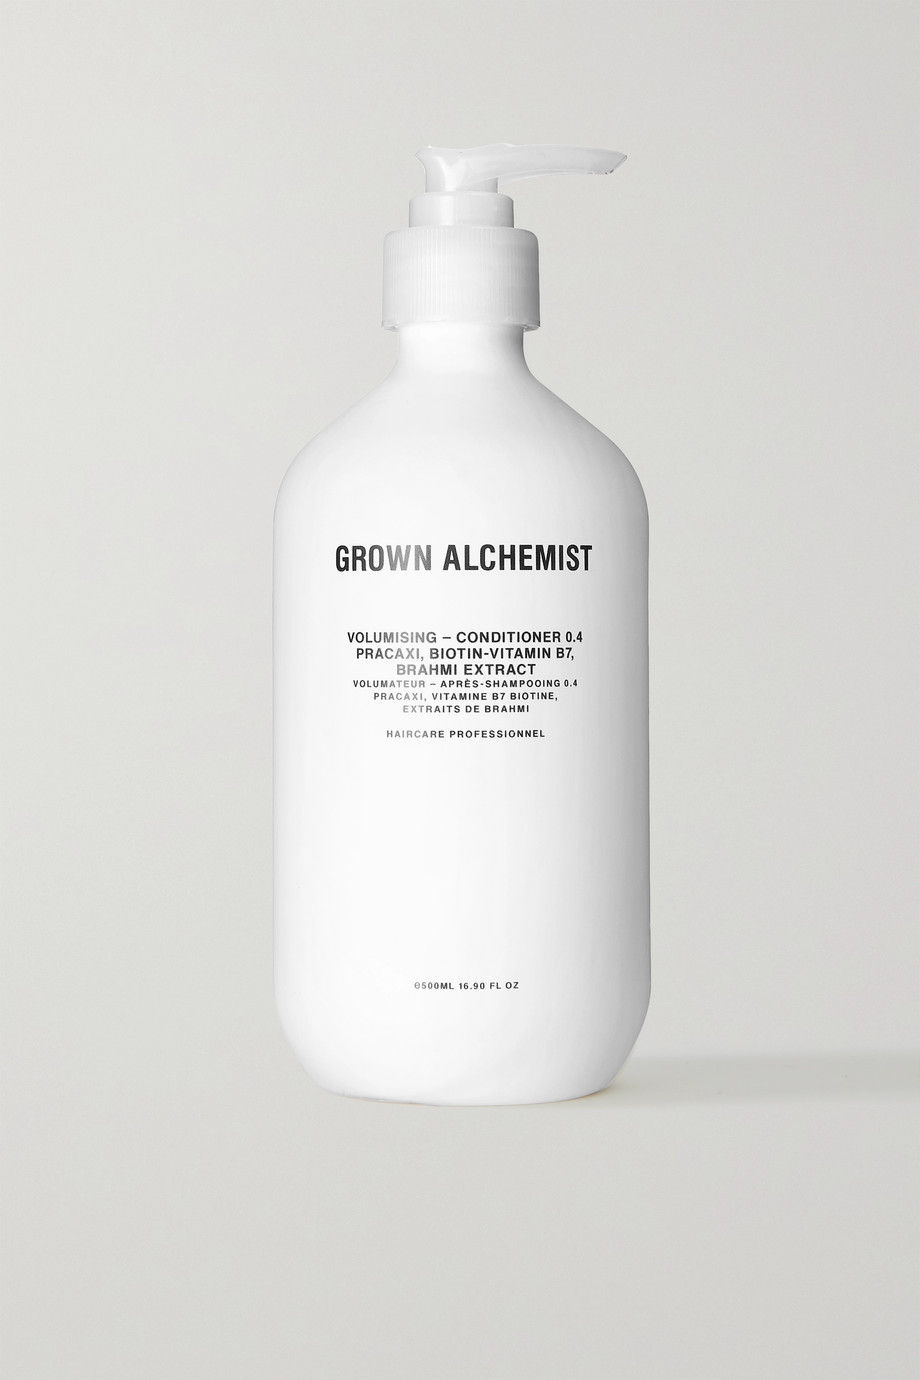 GROWN ALCHEMIST Volumising - Conditioner 0.4, 500ml